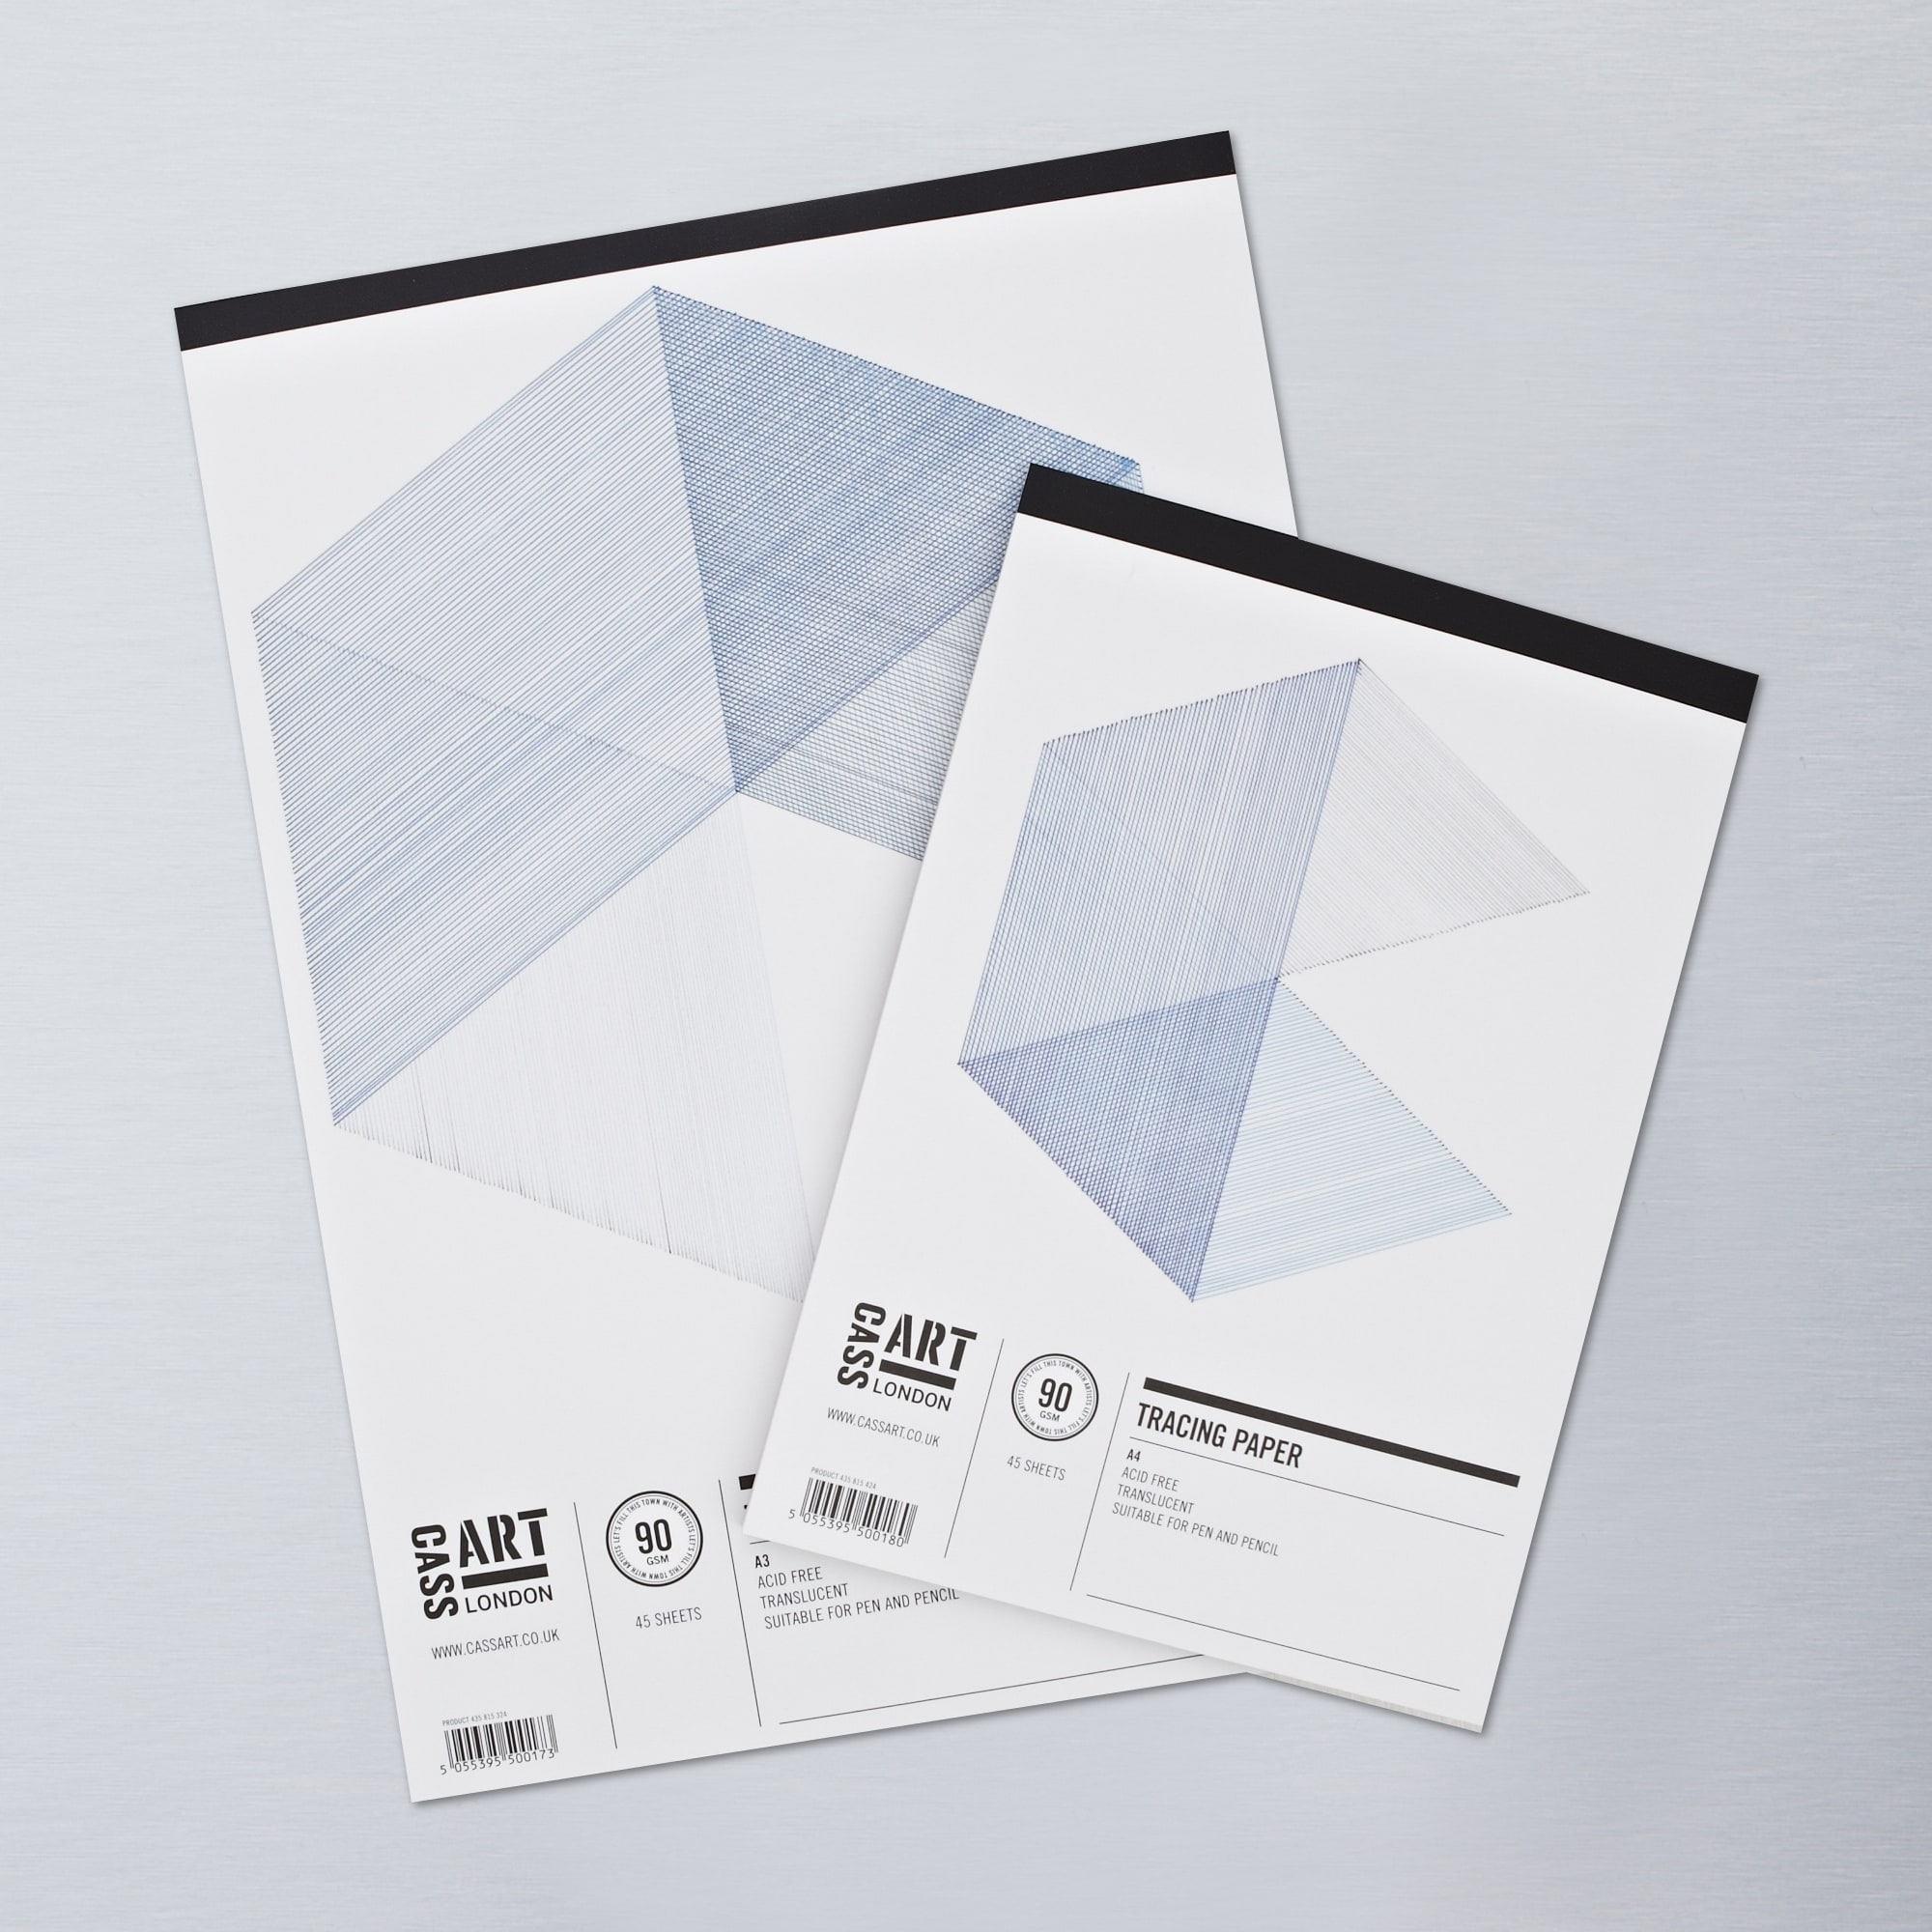 Cass art tracing 90gsm pad 45 sheets buy graphic paper for Buy blueprint paper